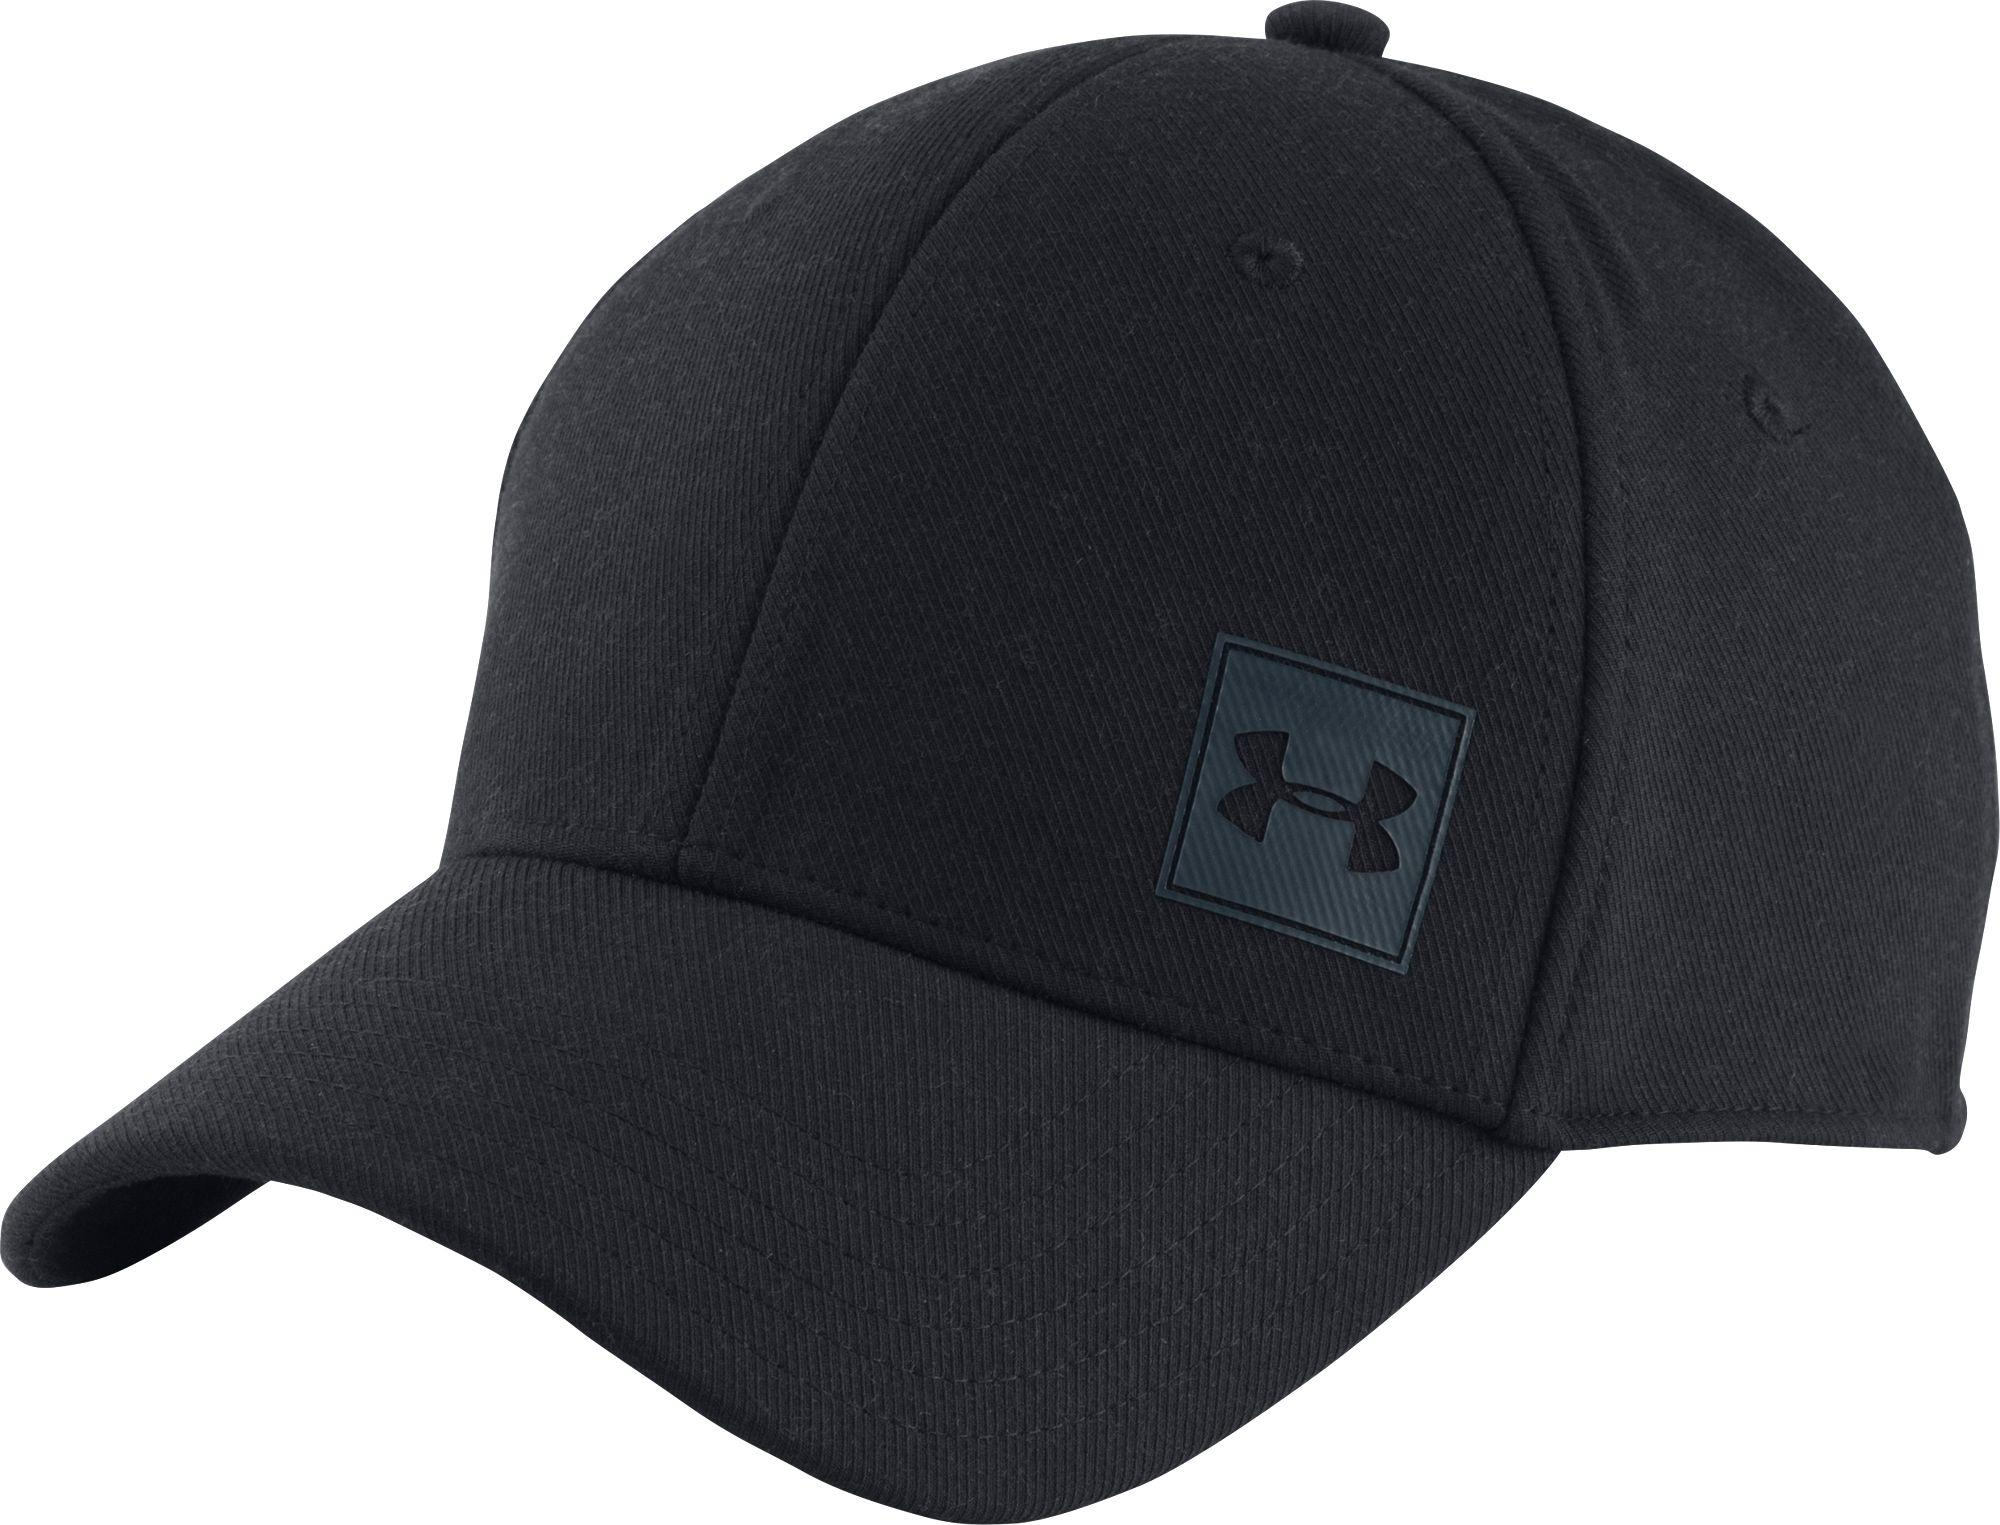 34b8e29fe18fd Under Armour - Black Wool Low Crown Hat for Men - Lyst. View fullscreen